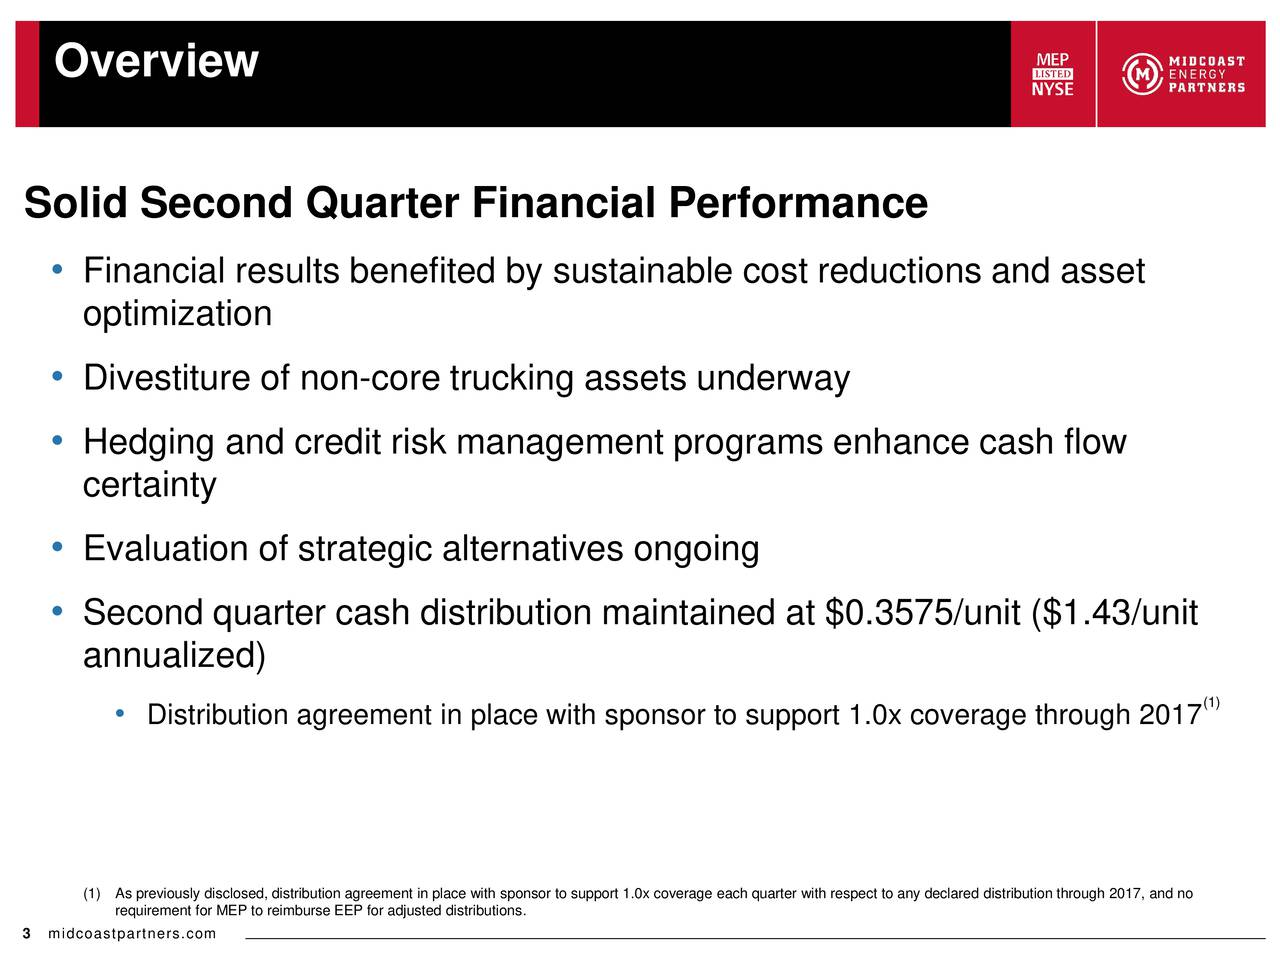 Solid Second Quarter Financial Performance Financial results benefited by sustainable cost reductions and asset optimization Divestiture of non-core trucking assets underway Hedging and credit risk management programs enhance cash flow certainty Evaluation of strategic alternatives ongoing Second quarter cash distribution maintained at $0.3575/unit ($1.43/unit annualized) Distribution agreement in place with sponsor to support 1.0x coverage through 2017(1) (1As previously disclosed, distribution agreement in place with sponsor to support 1.0x coverage each quarter with respect to any declared distribution through 2017, and no 3 midcoastpartners.com MEP to reimburse EEP for adjusted distributions.